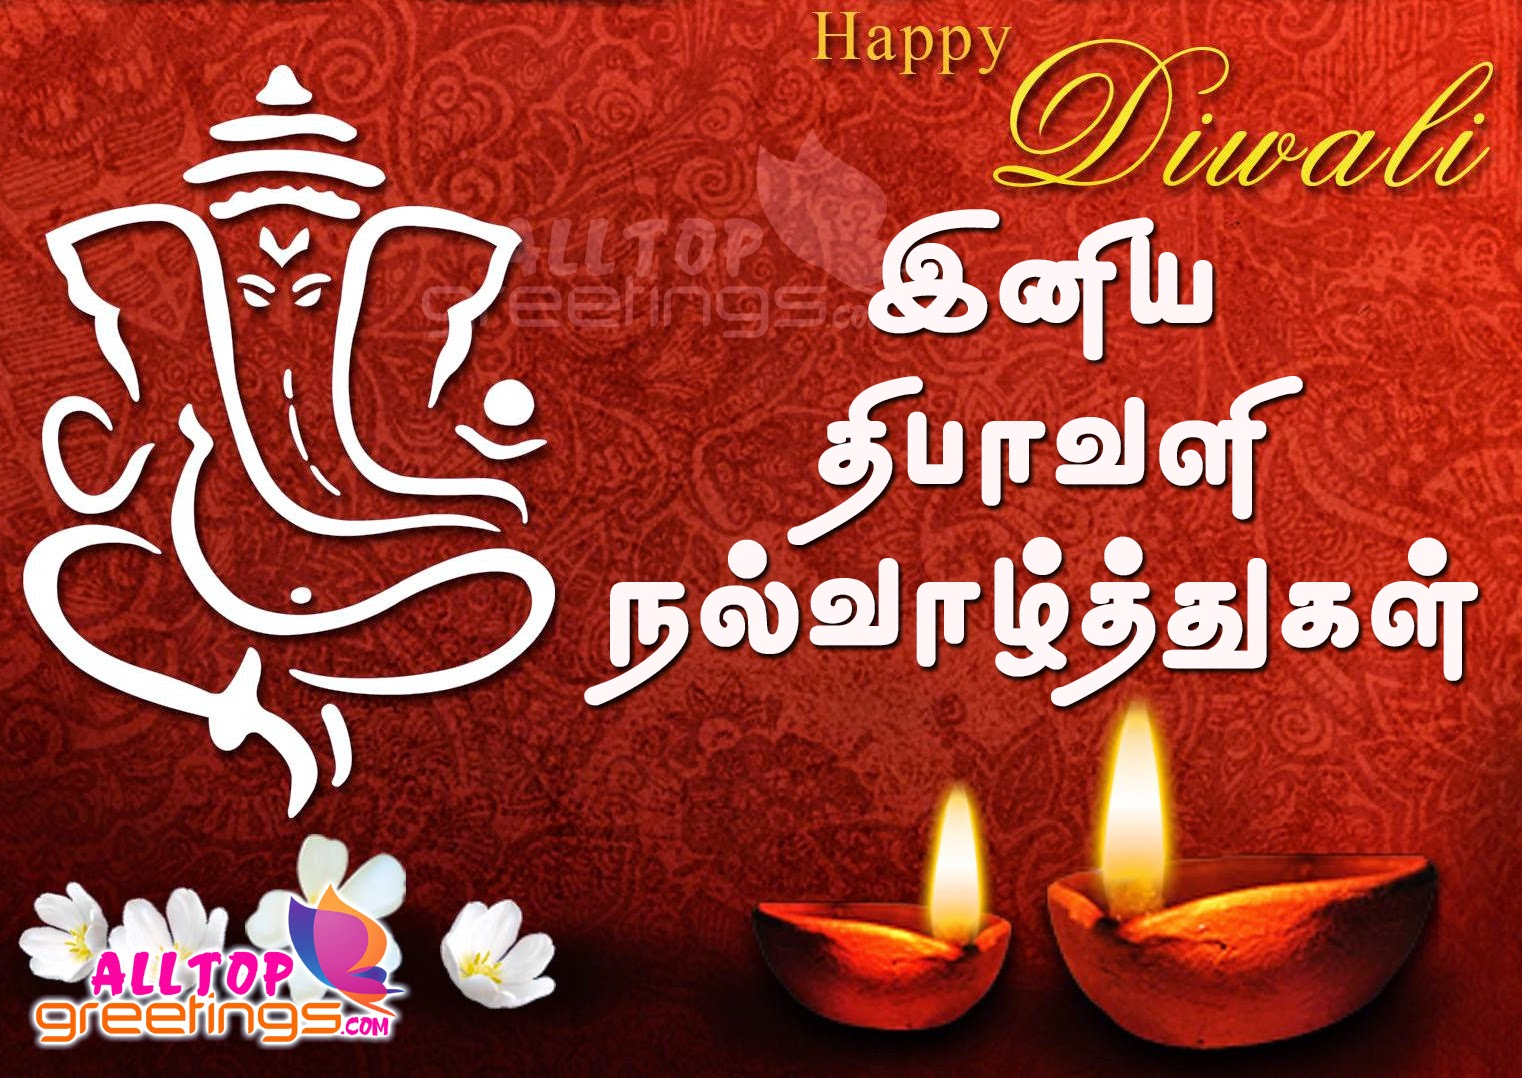 Deepavali 2014 wishes in tamil language all top greetings telugu best depavali tamil quotes pictures and gretings m4hsunfo